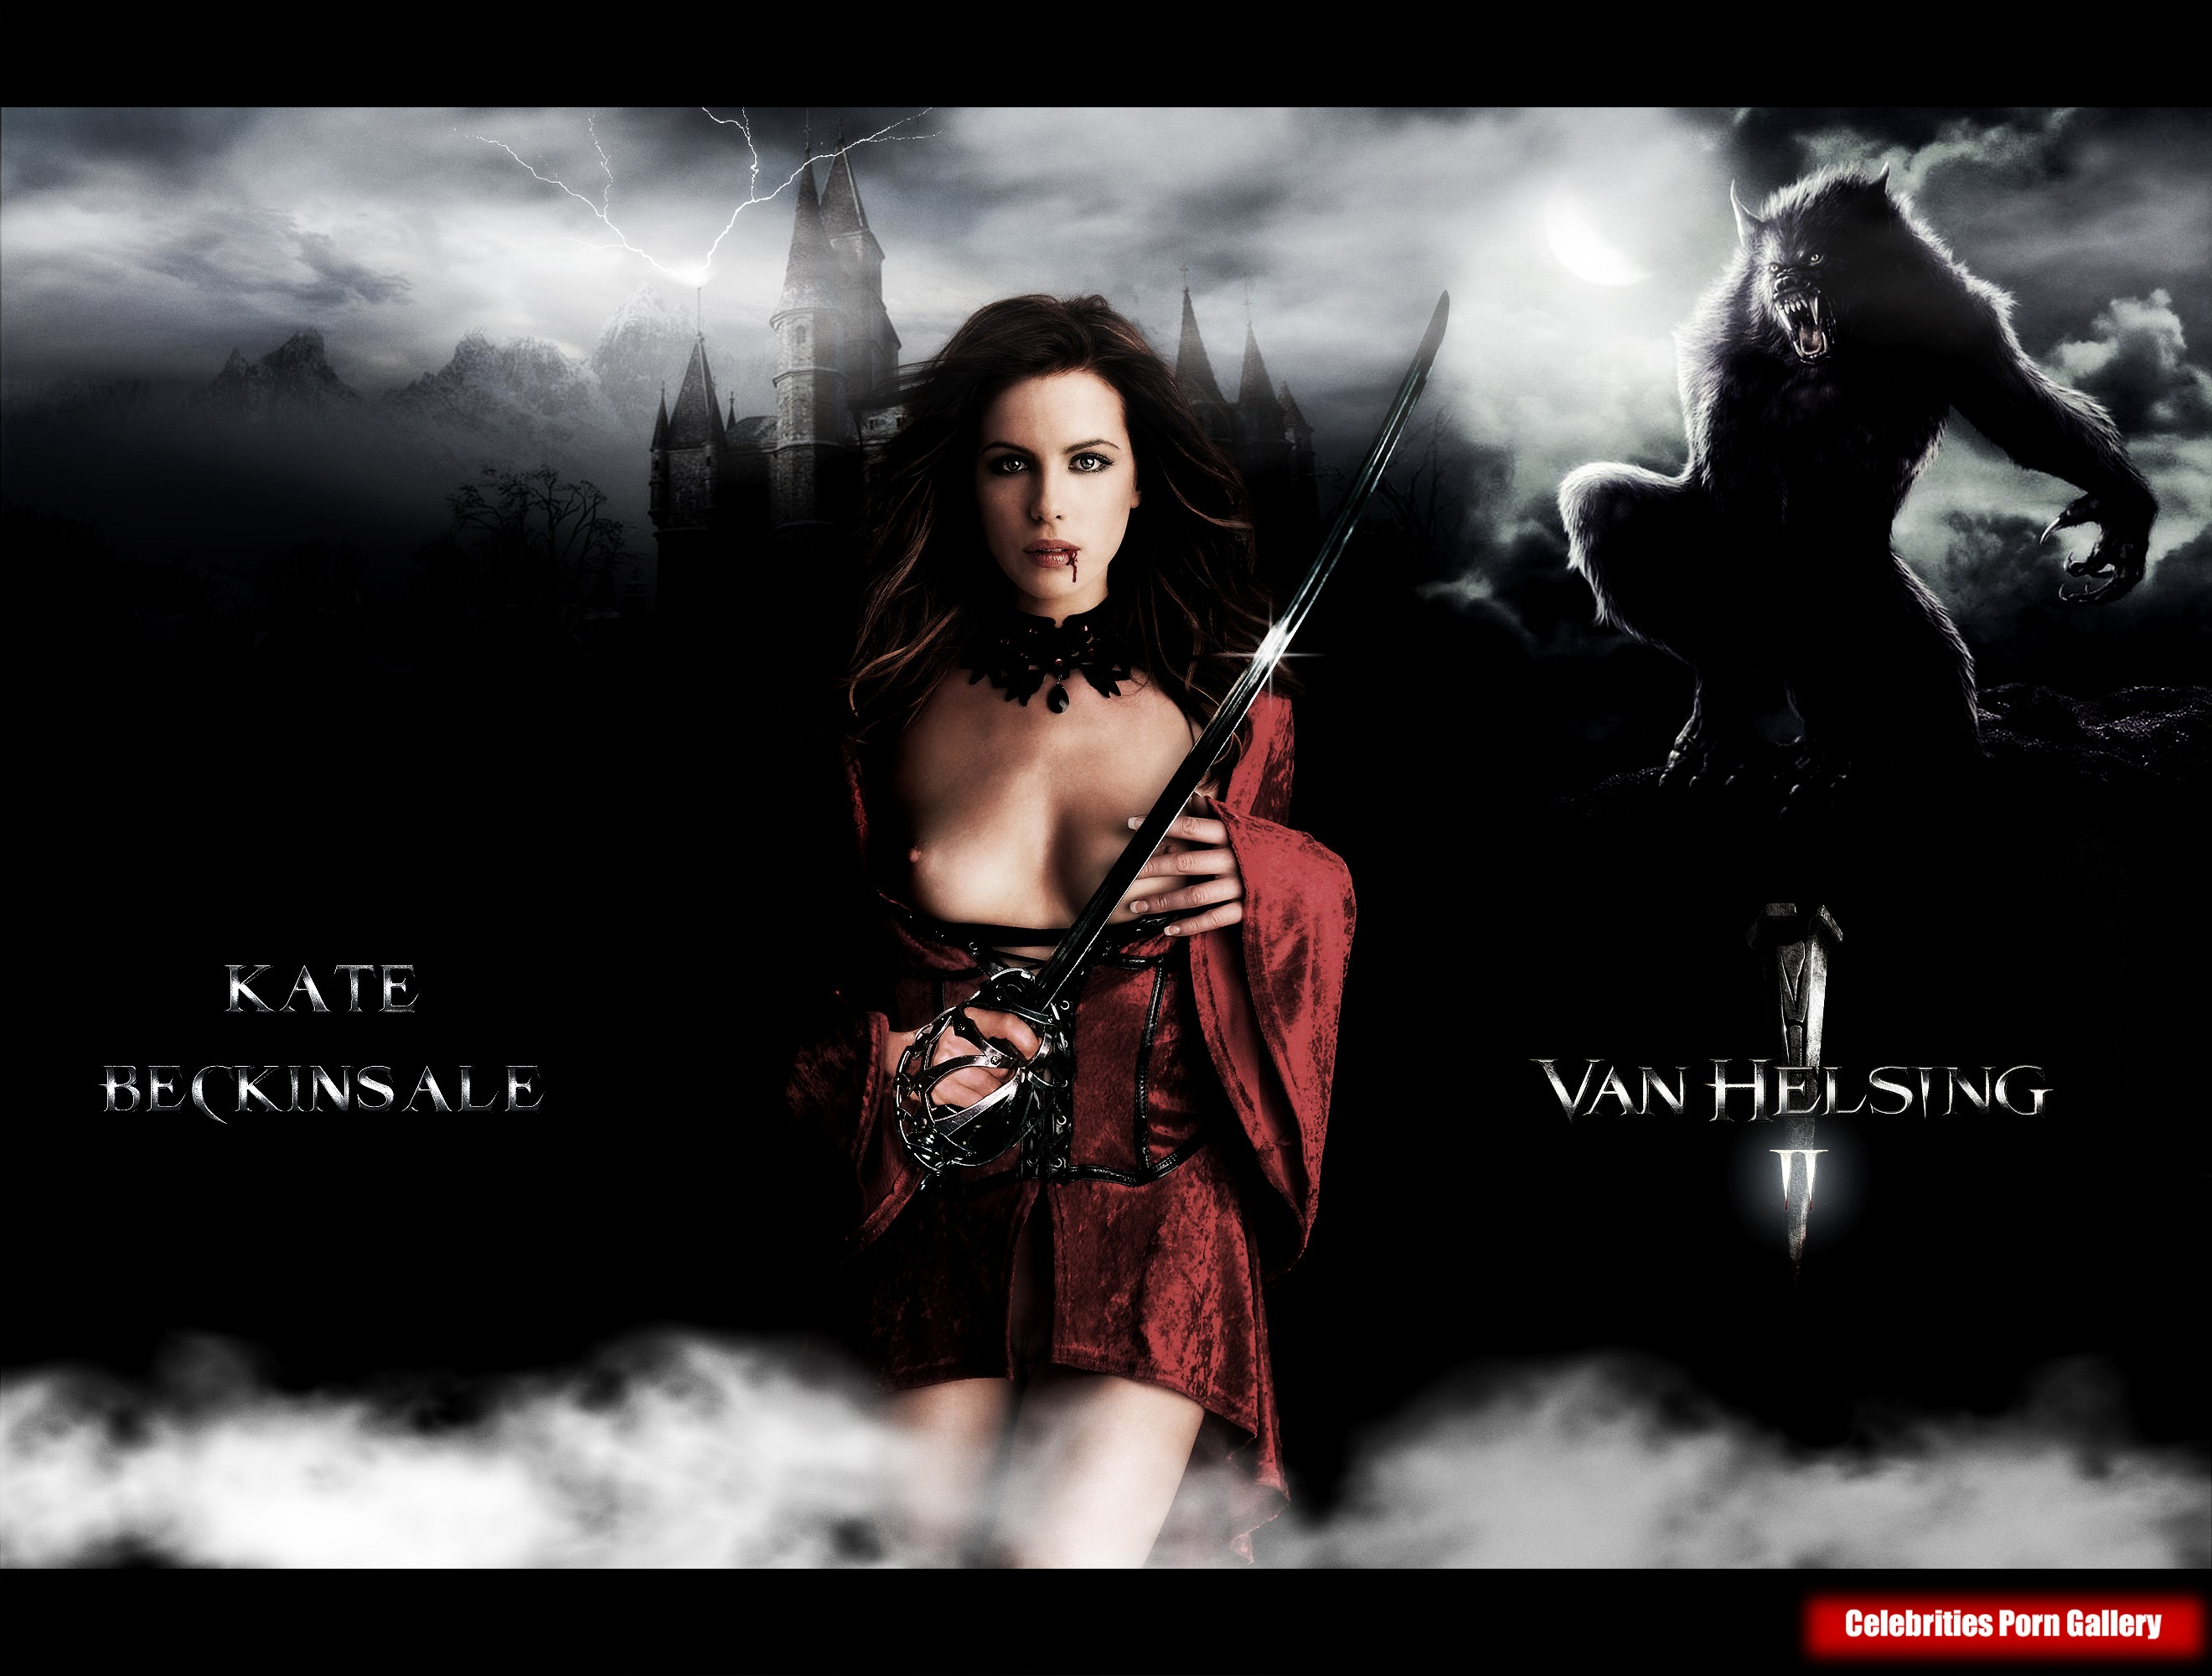 Remarkable Vanhellsing titts henti against. Your